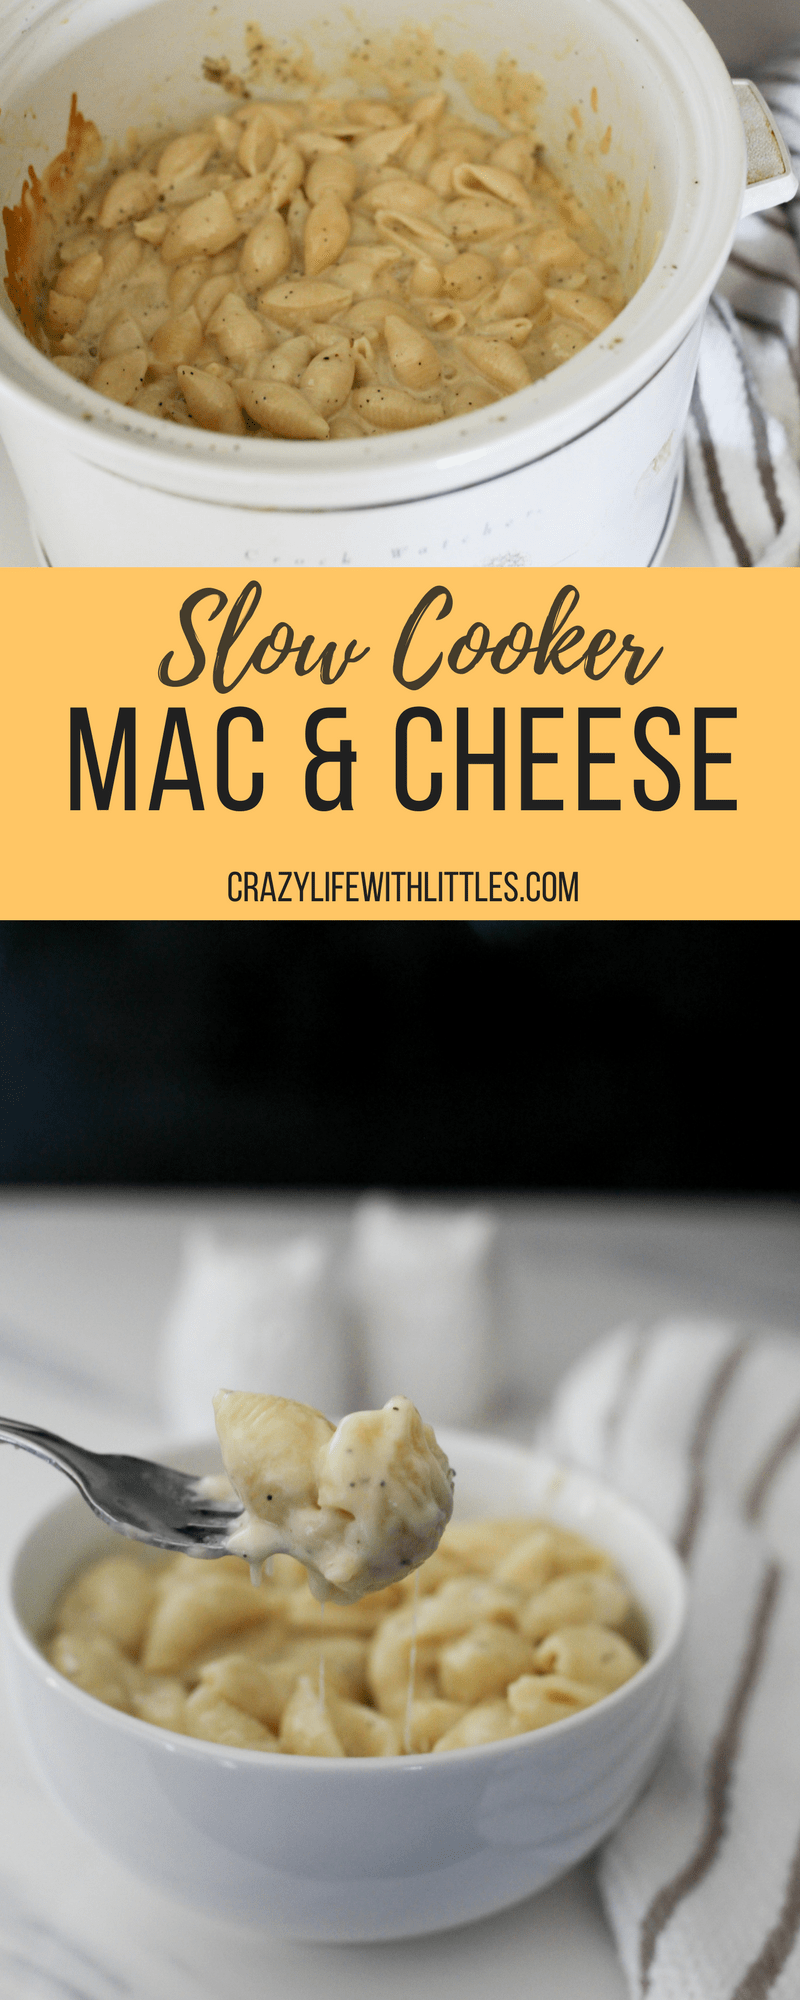 crockpot mac and cheese with cream cheese creamy crockpot mac and cheese recipe no boil slow cooker mac and cheese slow cooker mac and cheese with bacon slow cooker mac and cheese tasty slow cooker macaroni and cheese uncooked pasta slow cooker mac and cheese healthy